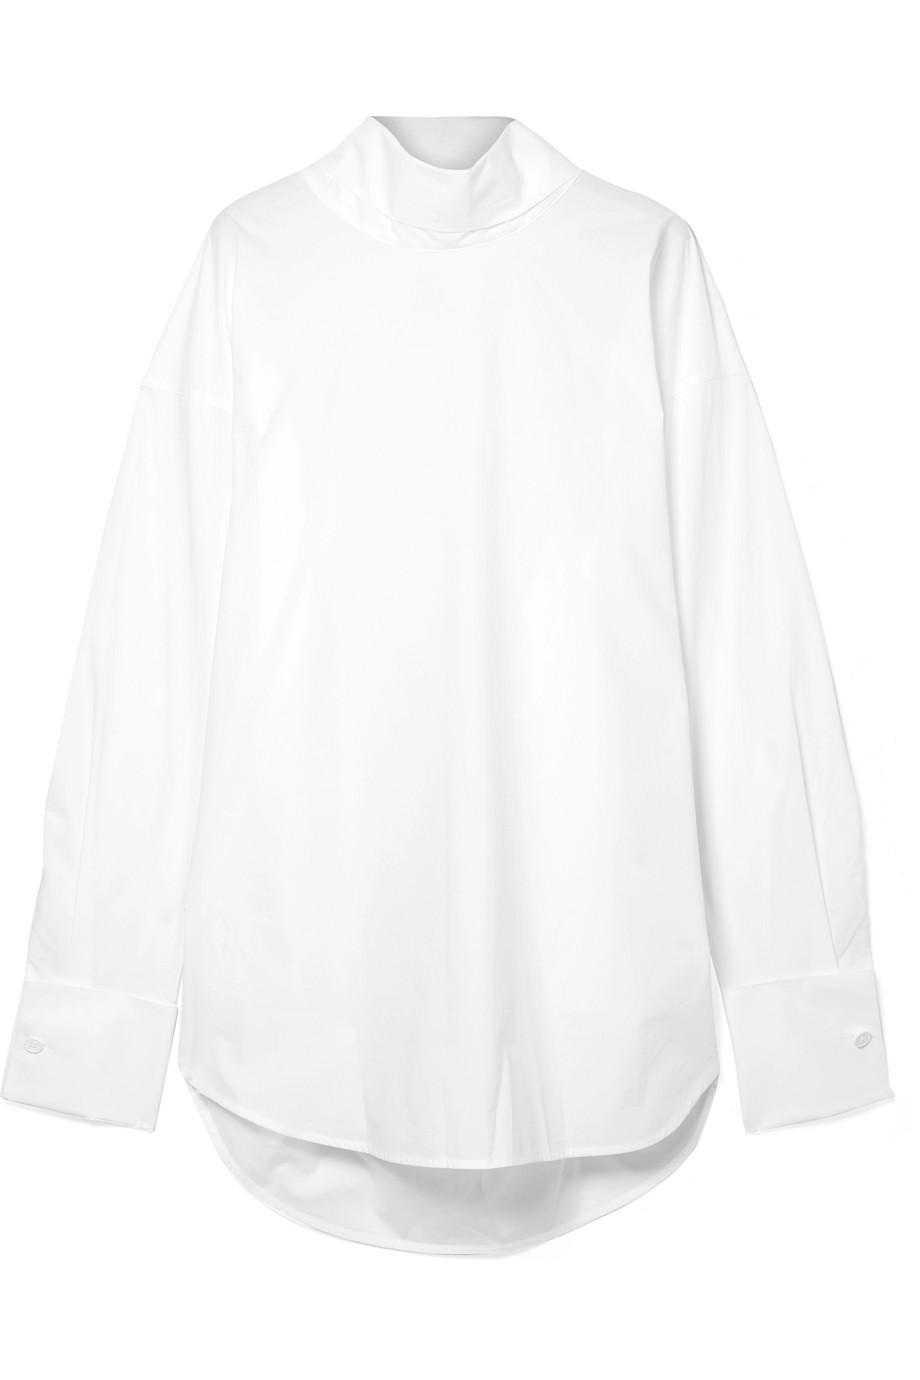 Mm6 By Maison Margiela Woman Wrap-effect Twill Top White Size M Maison Martin Margiela Cheap Pre Order Huge Range Of Free Shipping Cheap Price W7Xve2HVMD